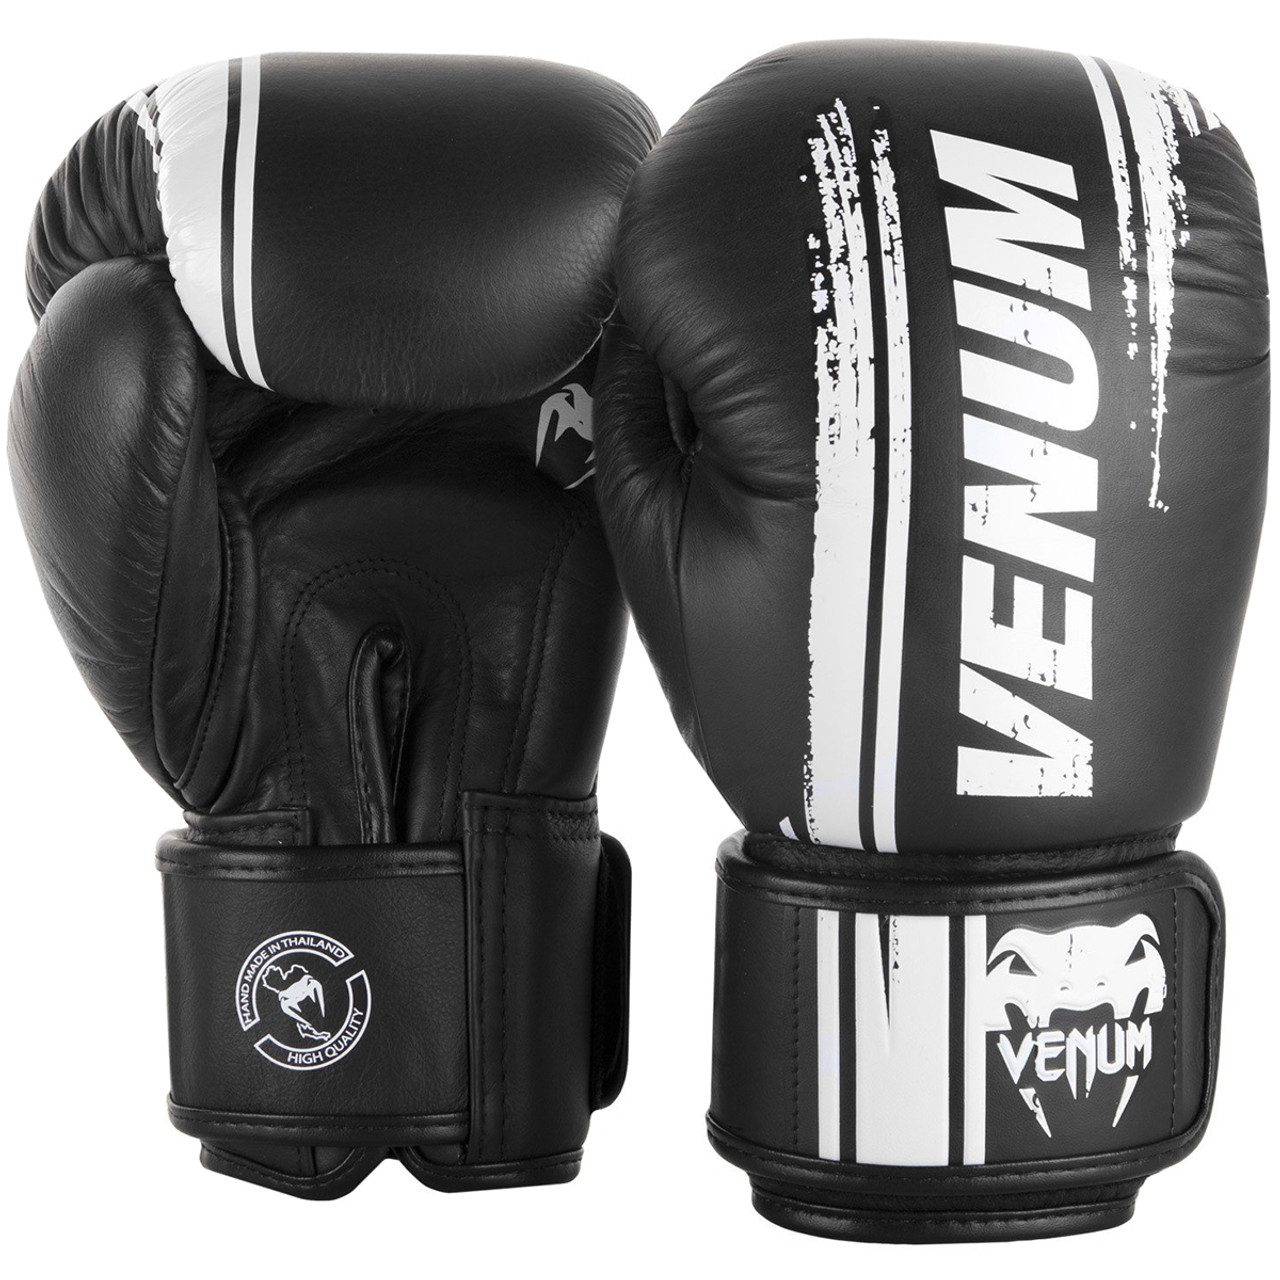 Venum Boxing Gloves Giant 3.0 Nappa Leather White Gold Sparring Training Gloves